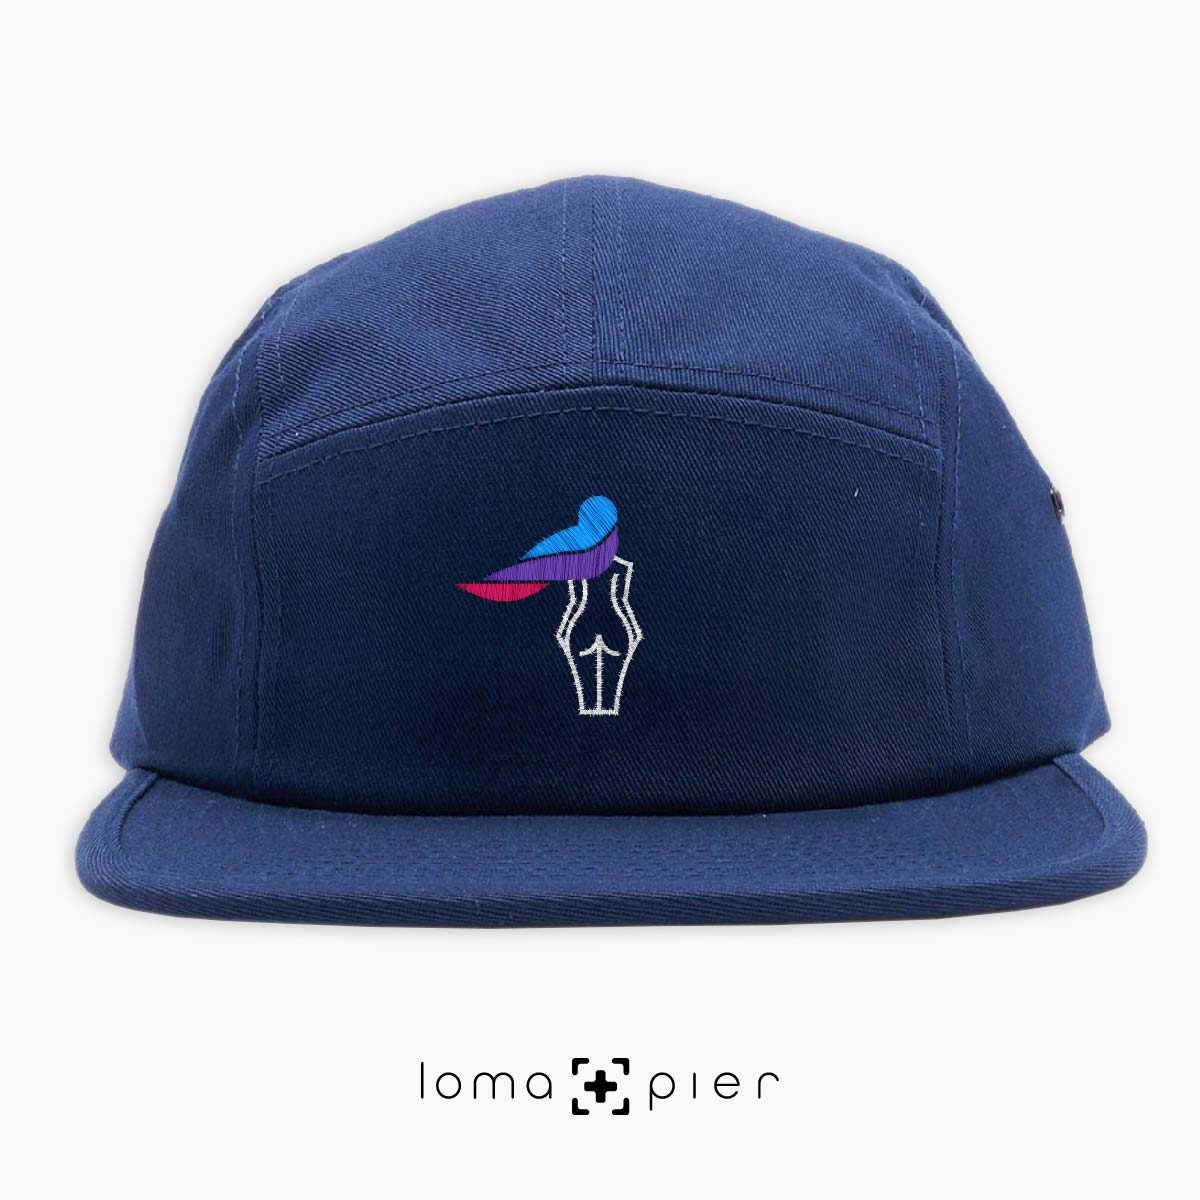 WAVY BEACH icon embroidered on a navy blue cotton 5-panel hat with multicolor thread by loma+pier hat store